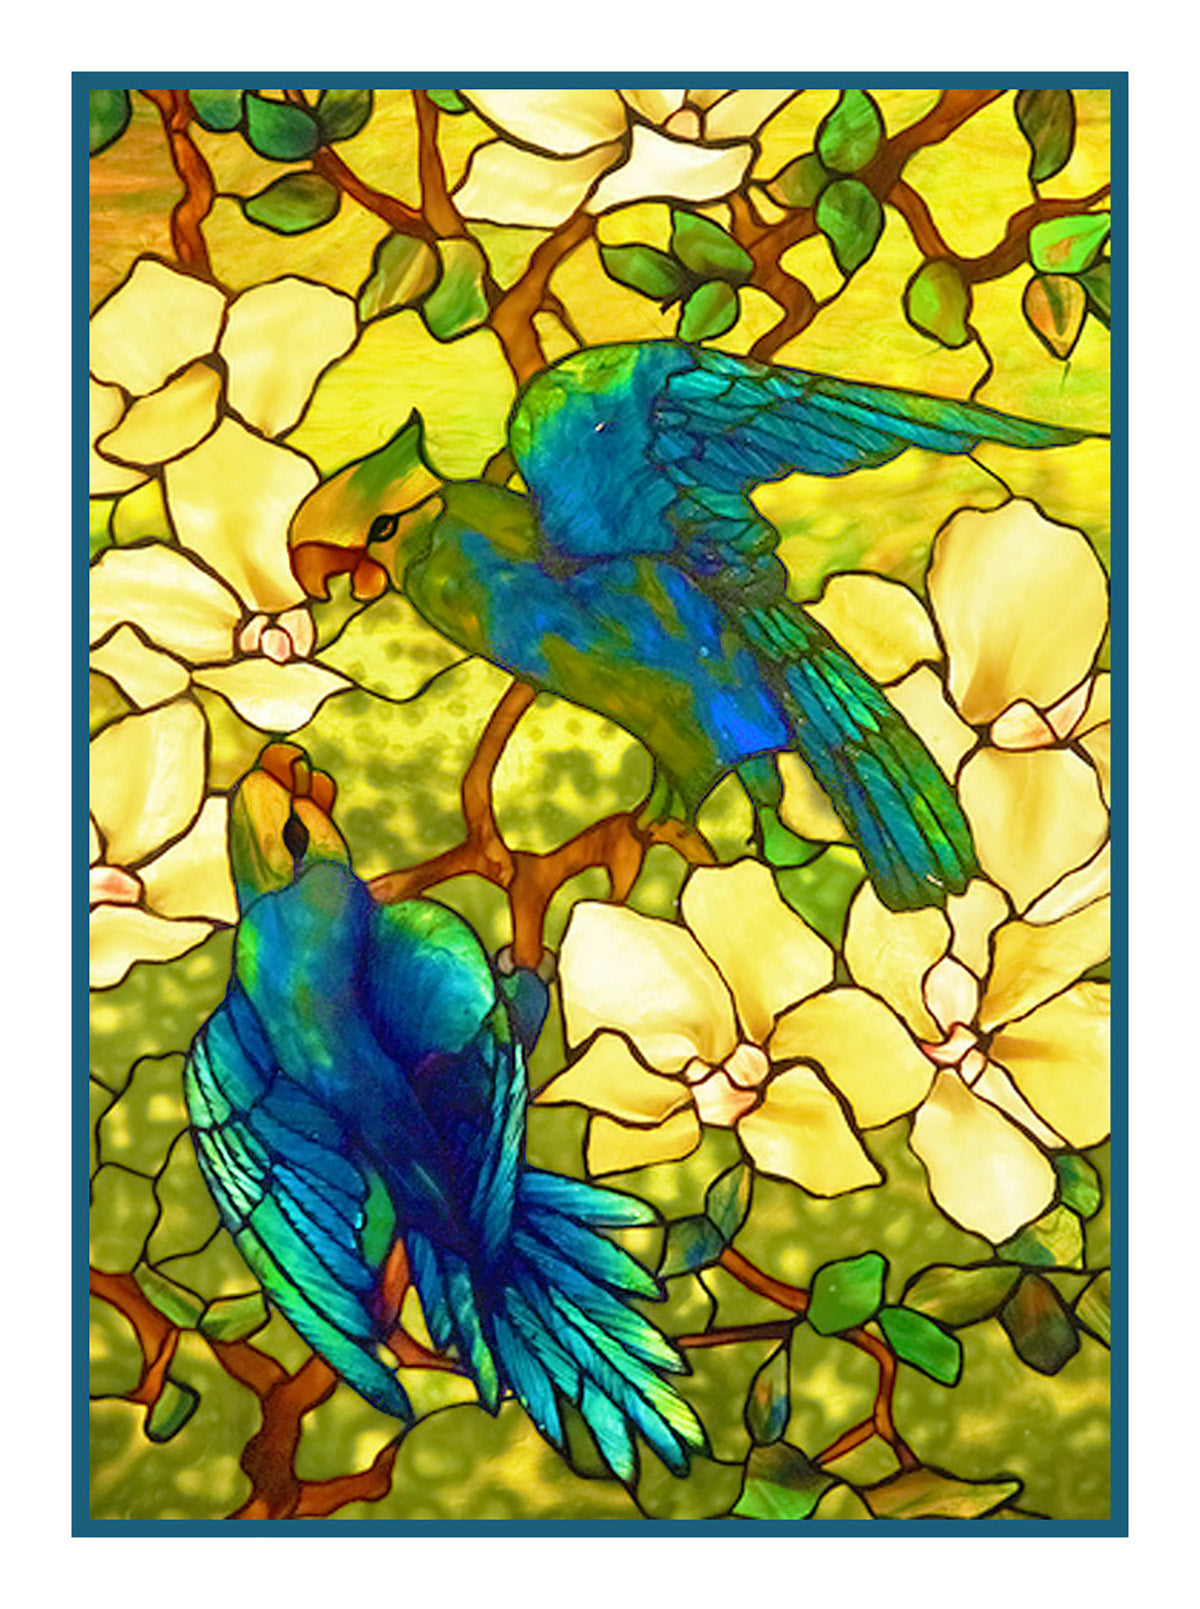 The Pair Of Parrot Birds Inspired By The Work Of Art Nouveau